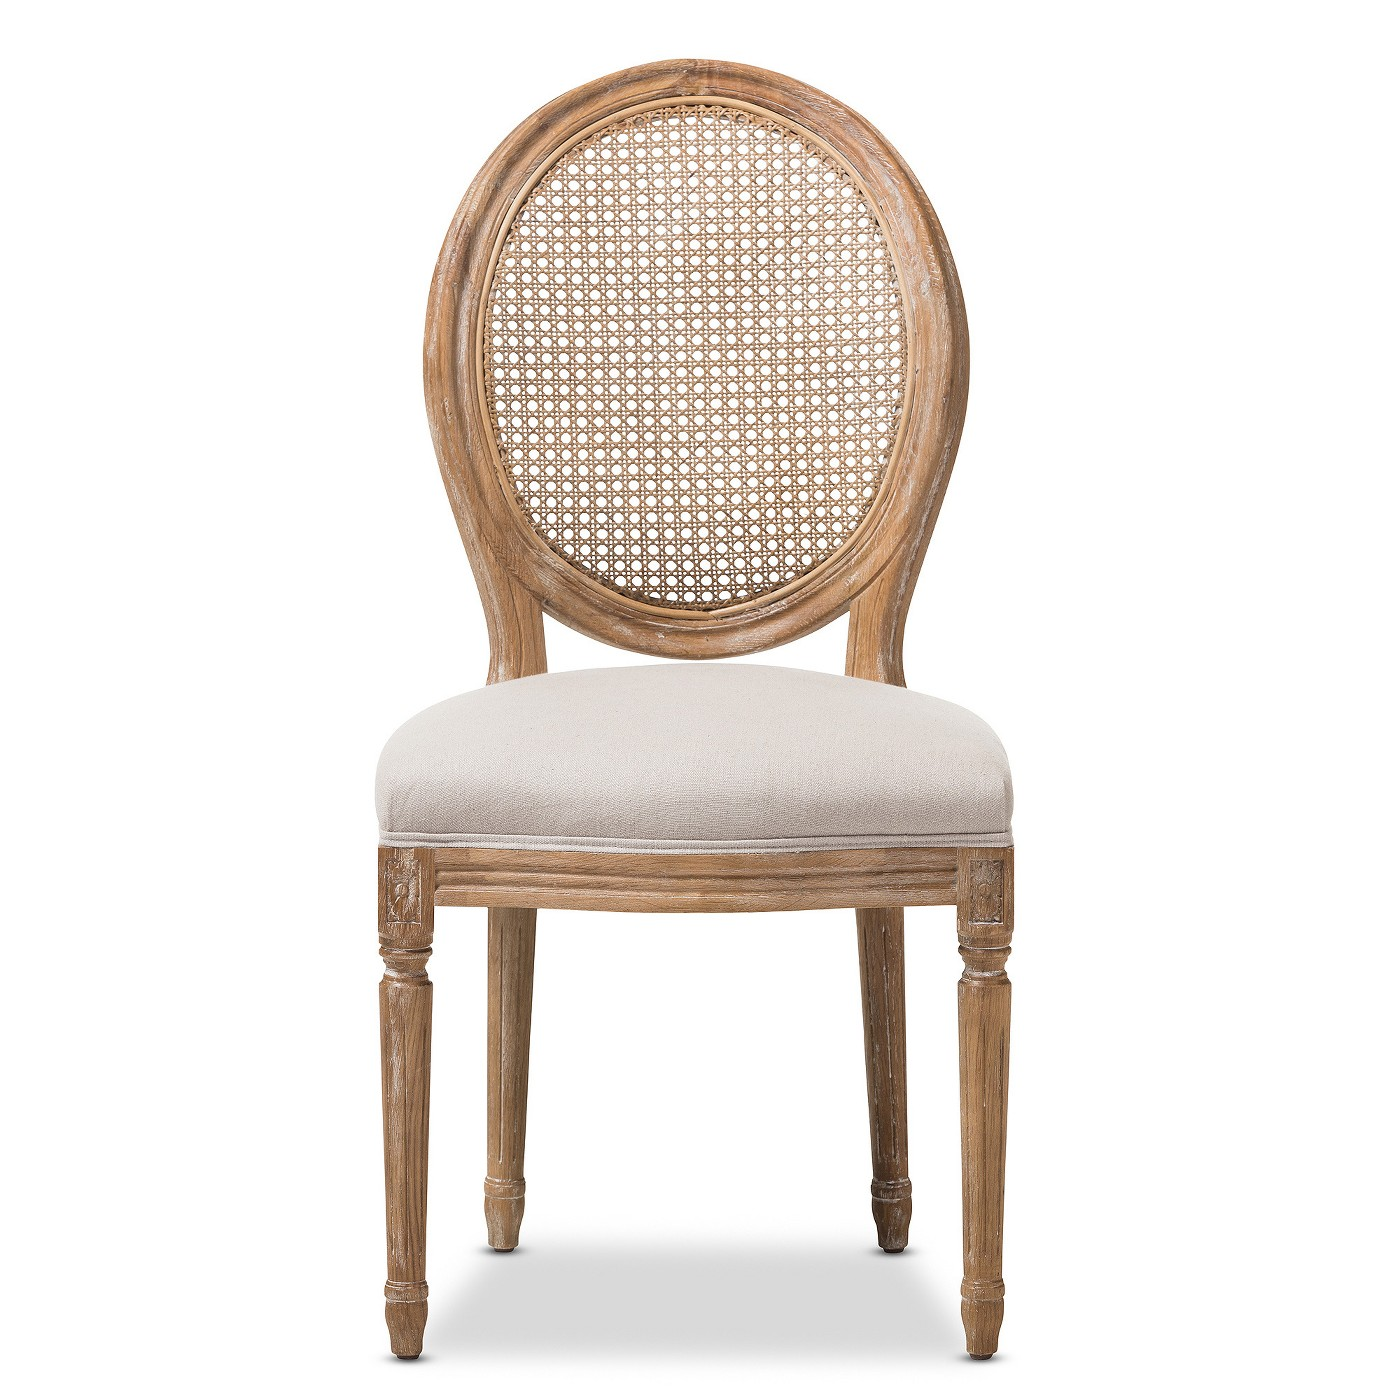 Adelia French Vintage Cottage Weathered Oak Wood Finish and Fabric Upholstered Dining Side Chair with Round Cane Back - Beige - Baxton Studio - image 2 of 5